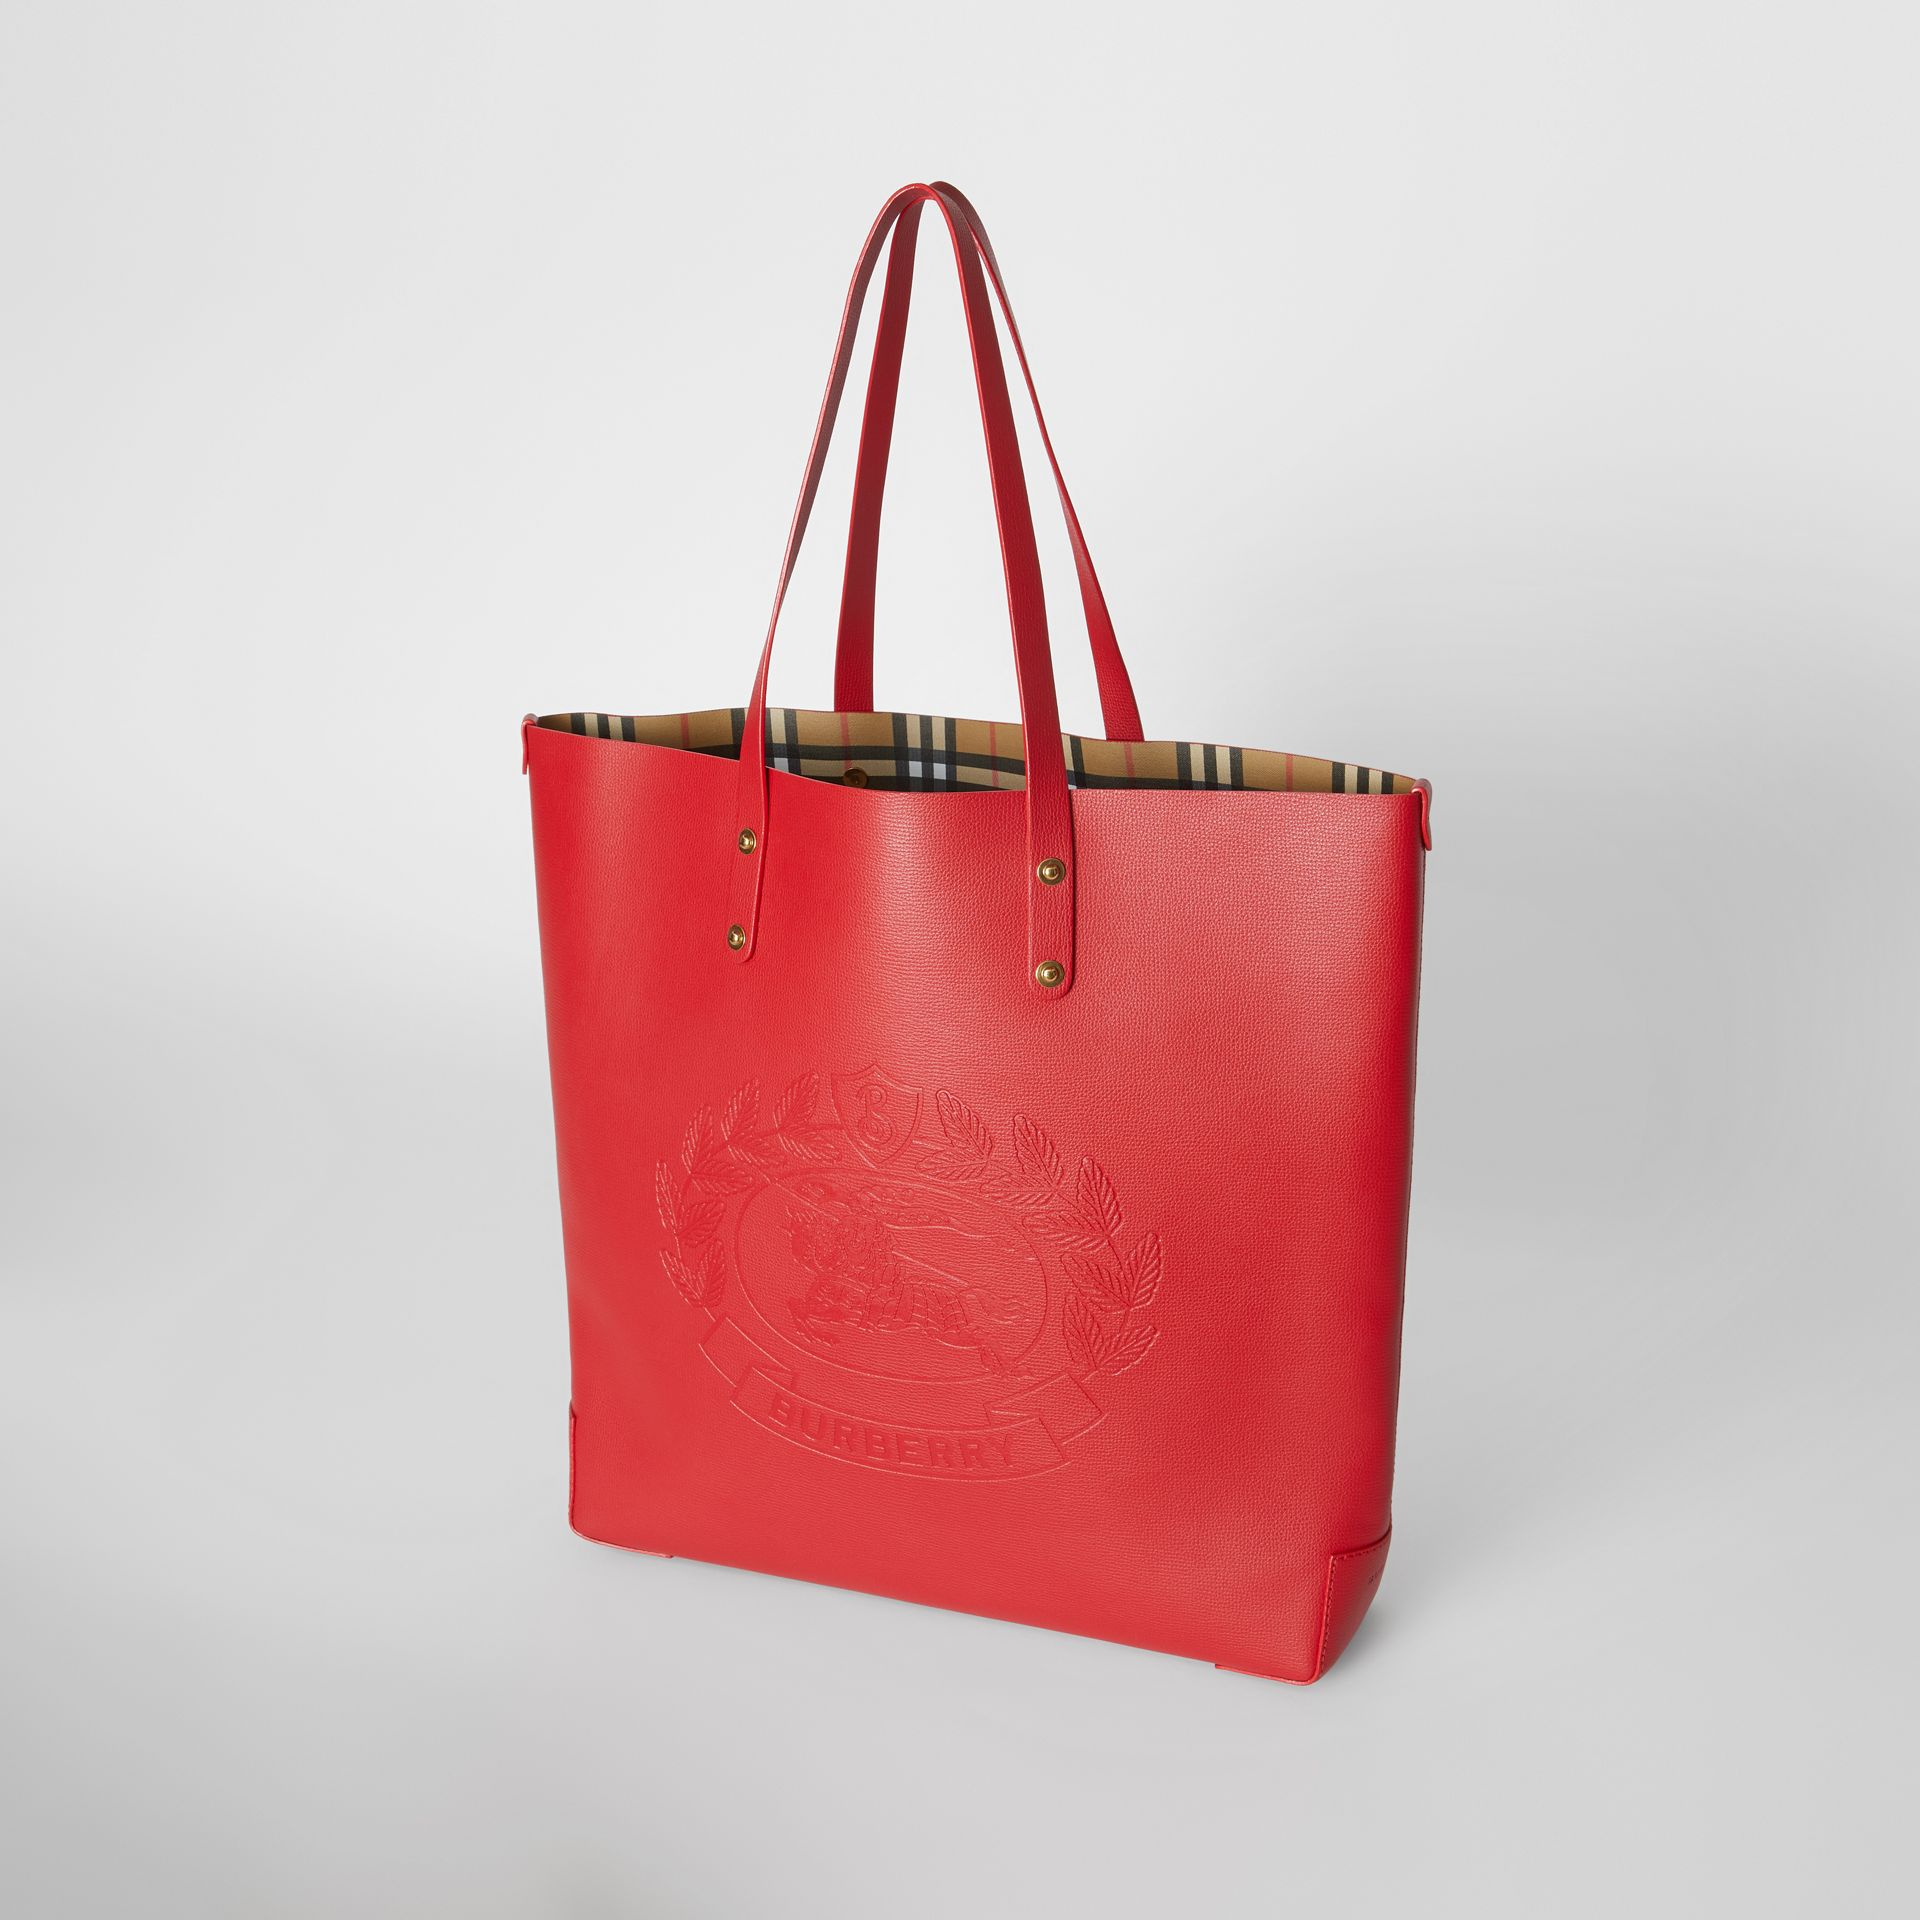 Grand sac cabas en cuir avec écusson (Rouge Rouille) - Femme | Burberry - photo de la galerie 3